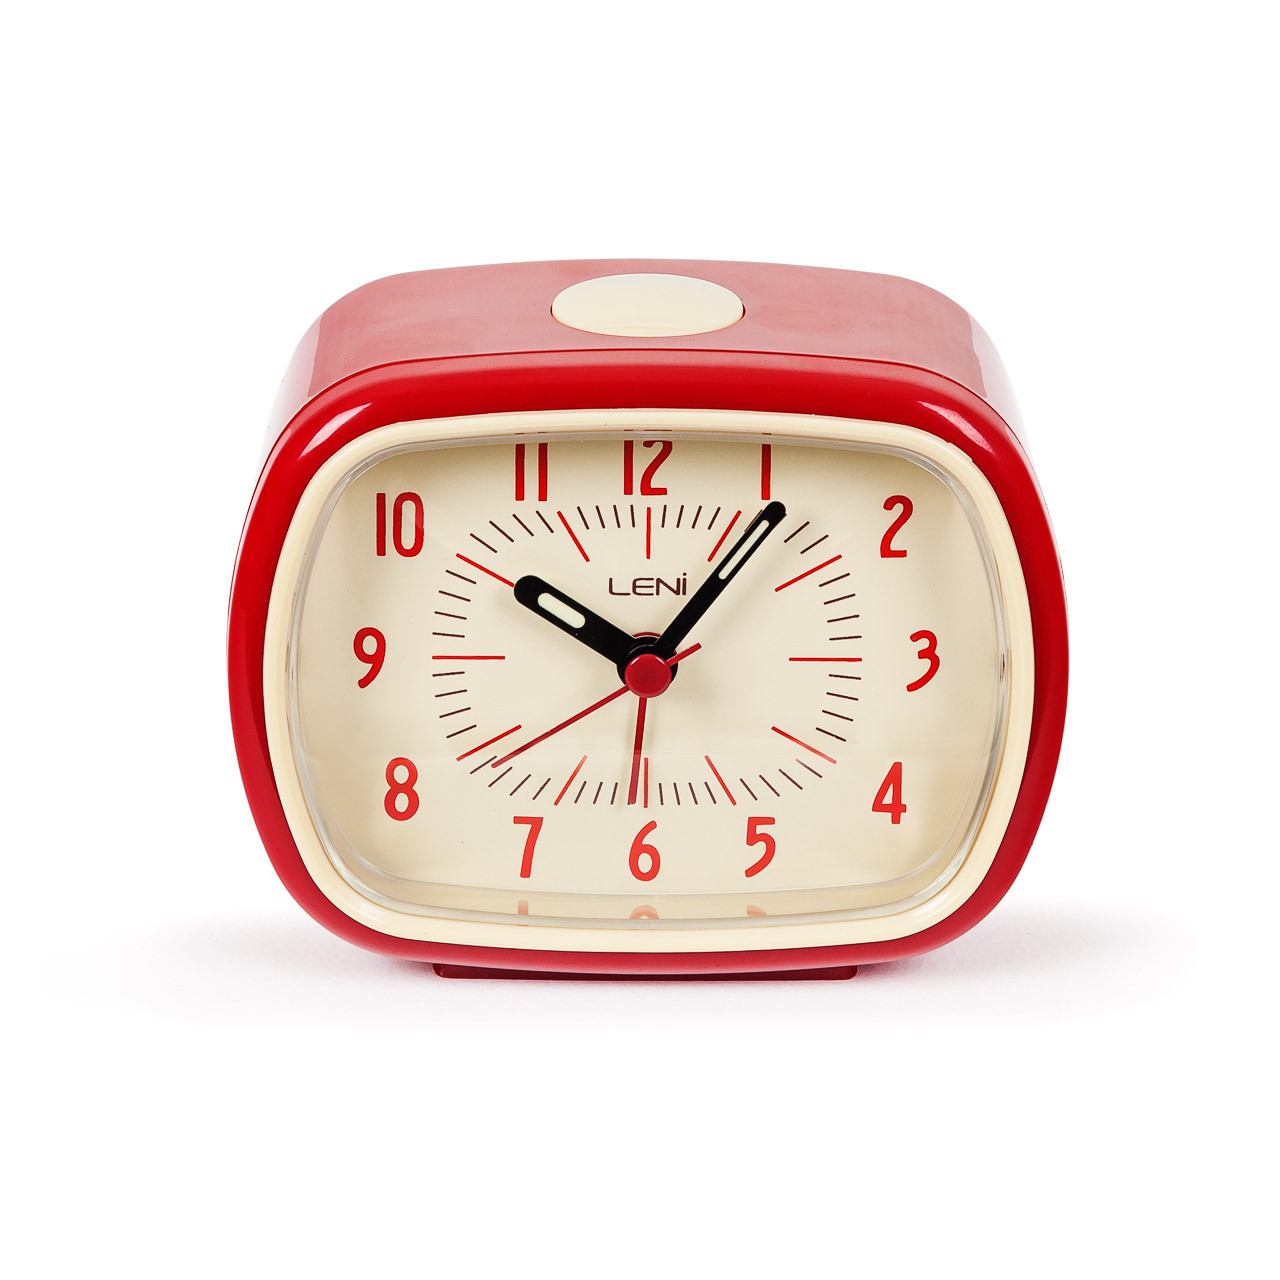 Retro Alarm Clock Red | Buy Funky Alarm Clock | Bedside Clock